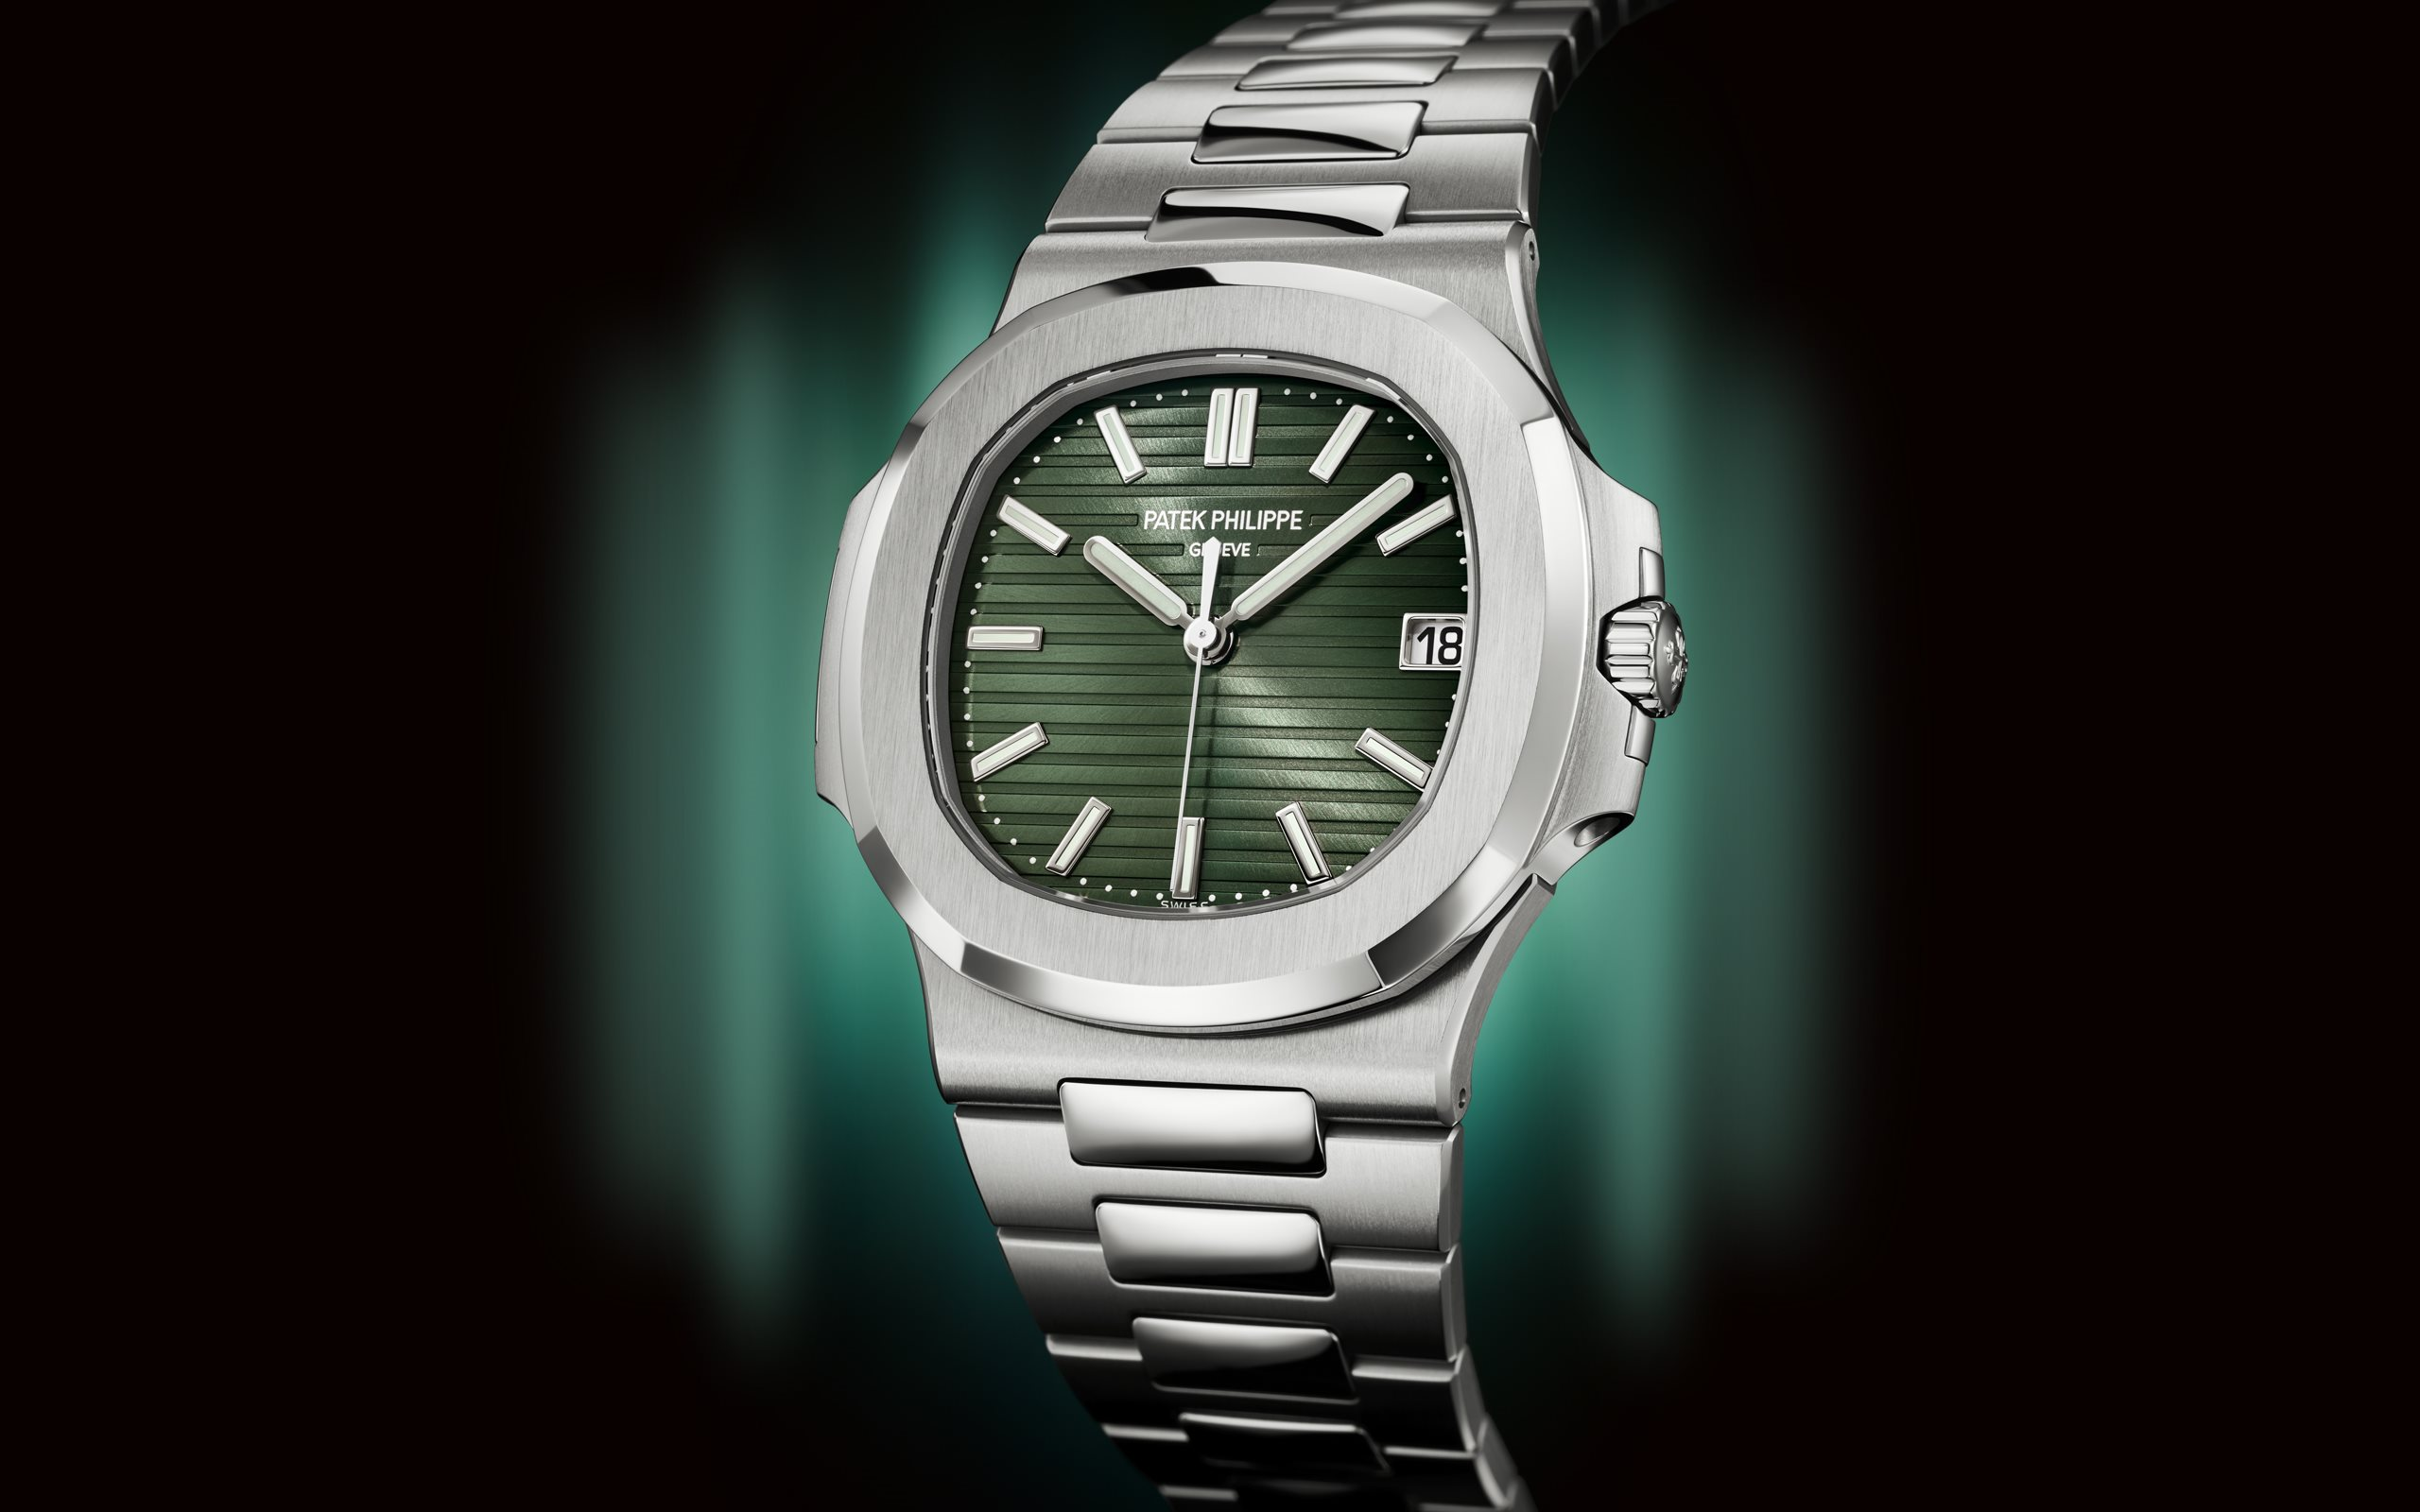 New Release: The Patek Philippe Nautilus 5711 Now in Olive Green